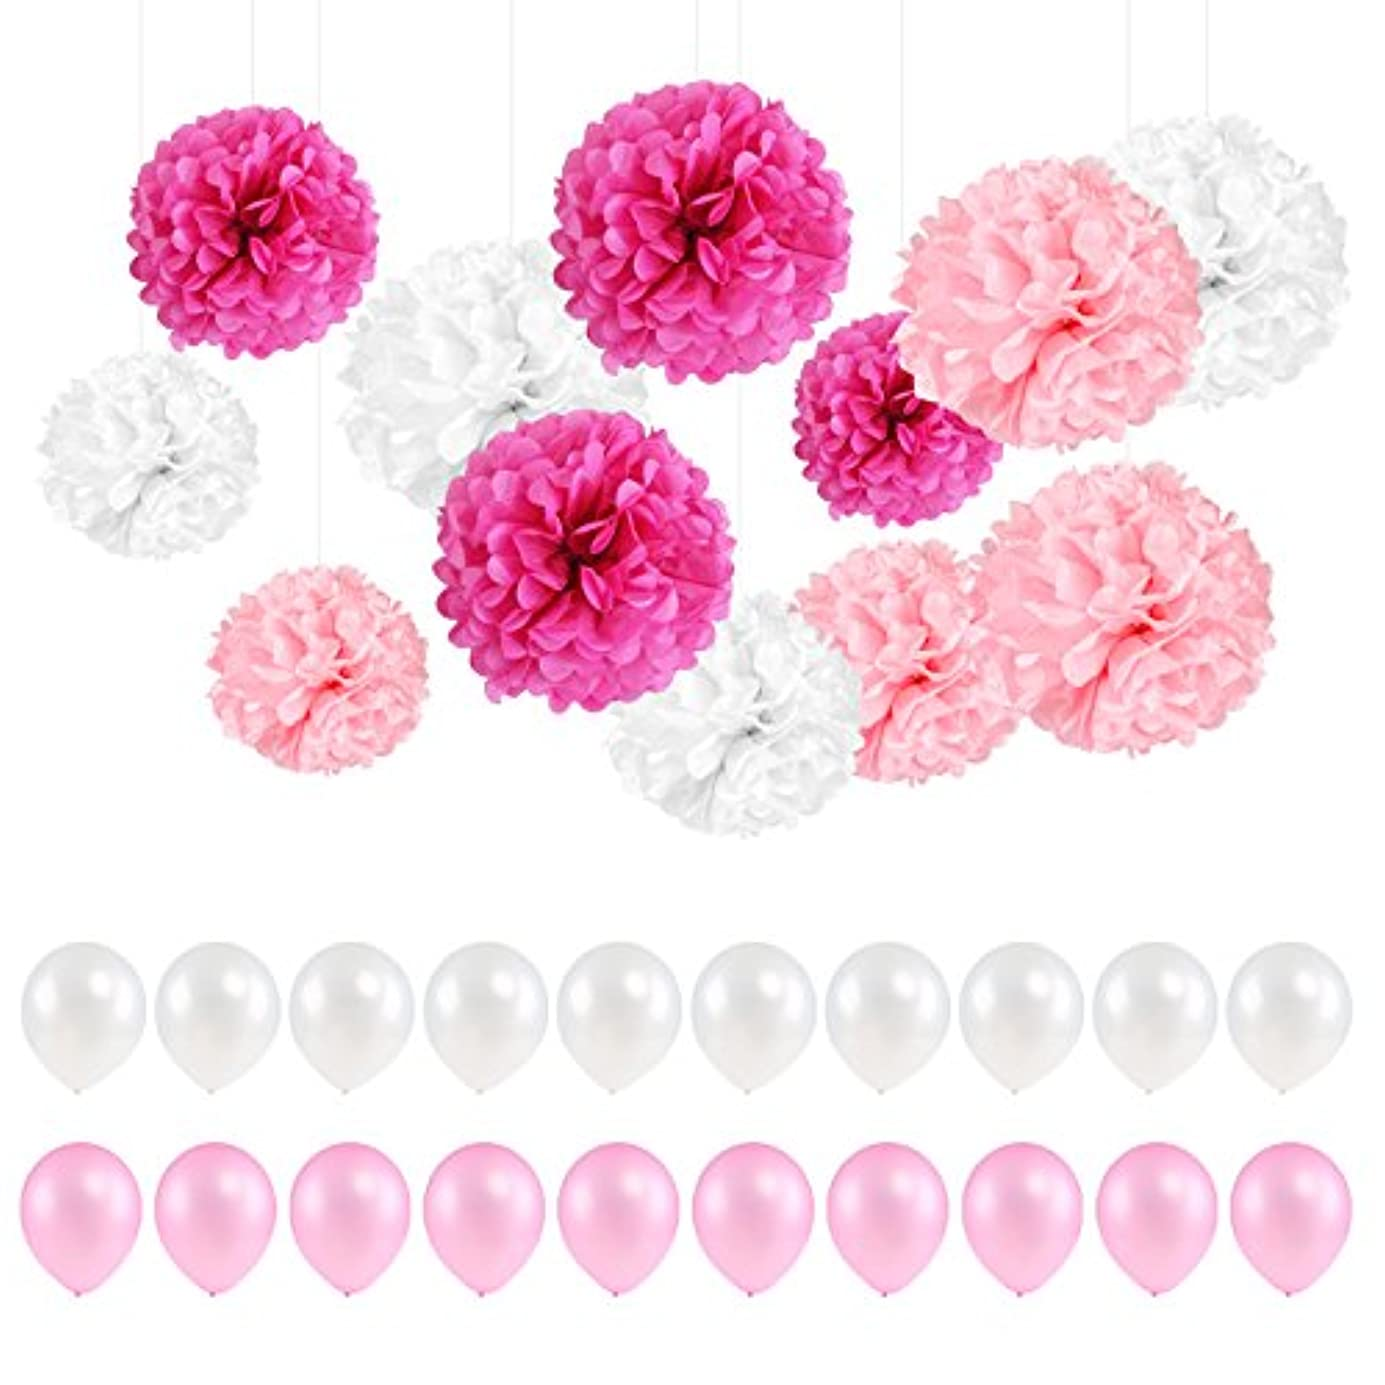 Kesoto 12pcs Tissue Hanging Paper Pom-poms with 24pcs Balloons for Baby Shower Decorations, Wedding Decor, Birthday Party Celebration kgxsvu7785